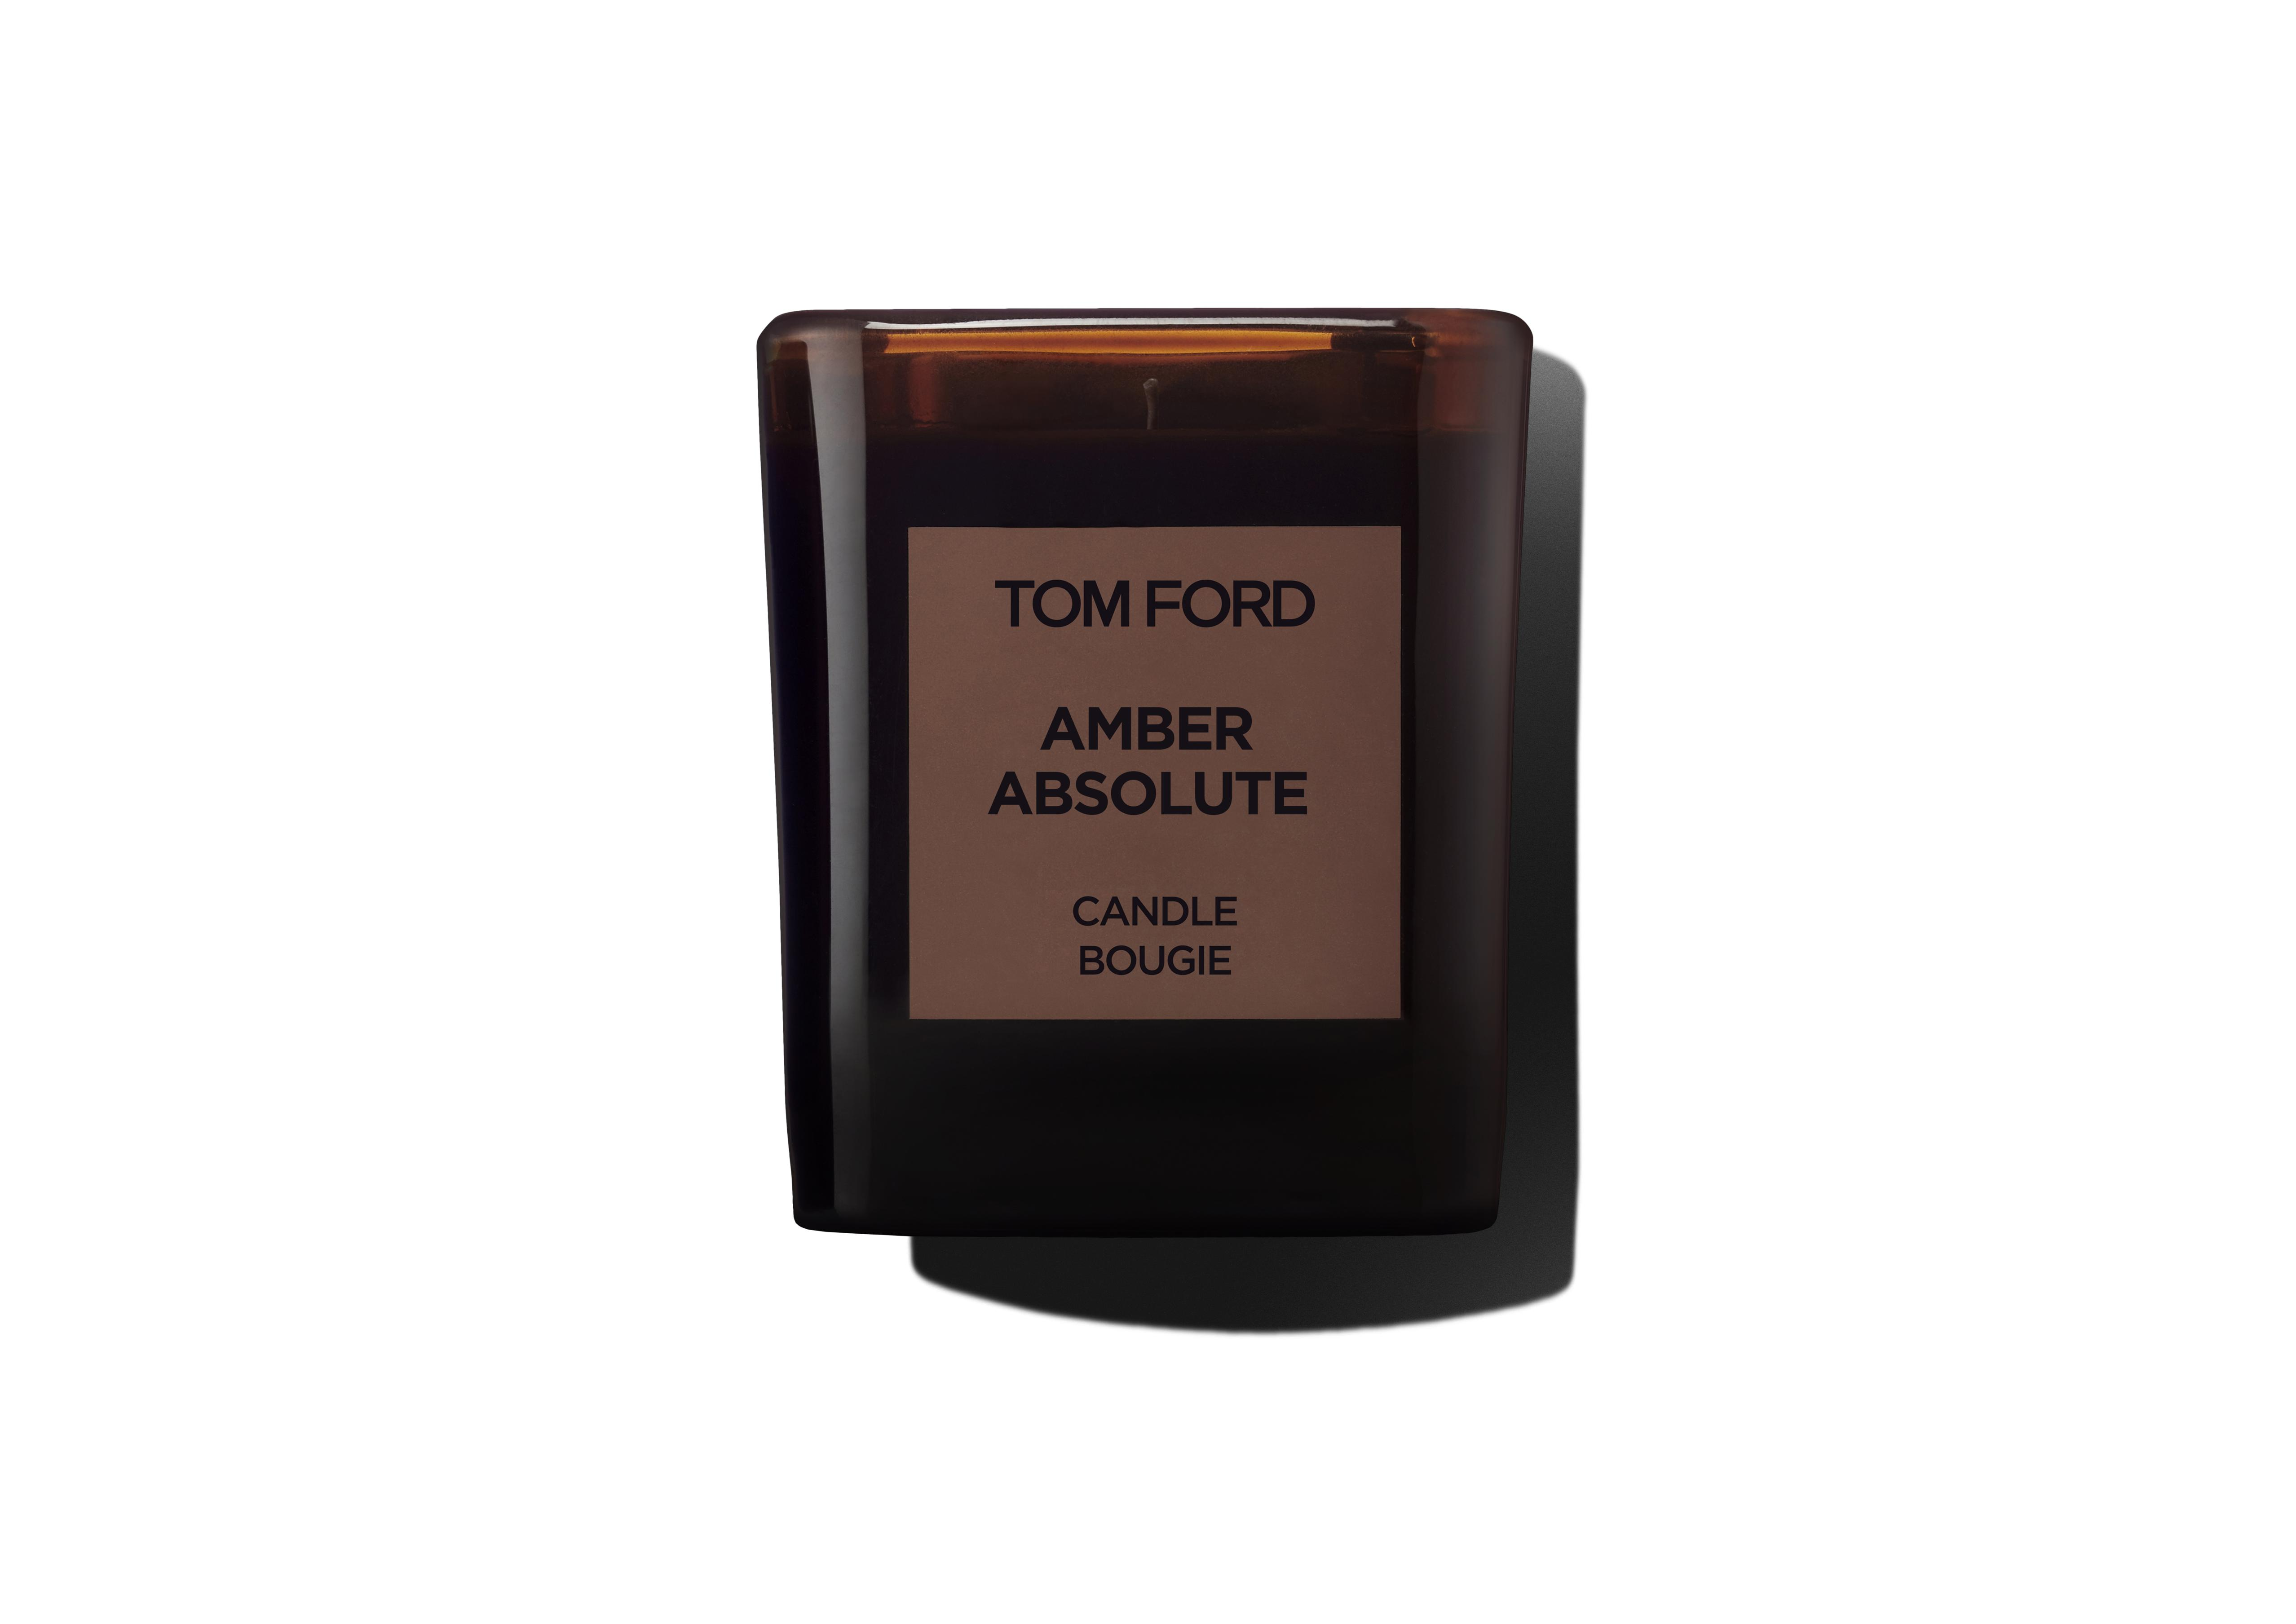 PRIVATE BLEND AMBER ABSOLUTE CANDLE A thumbnail